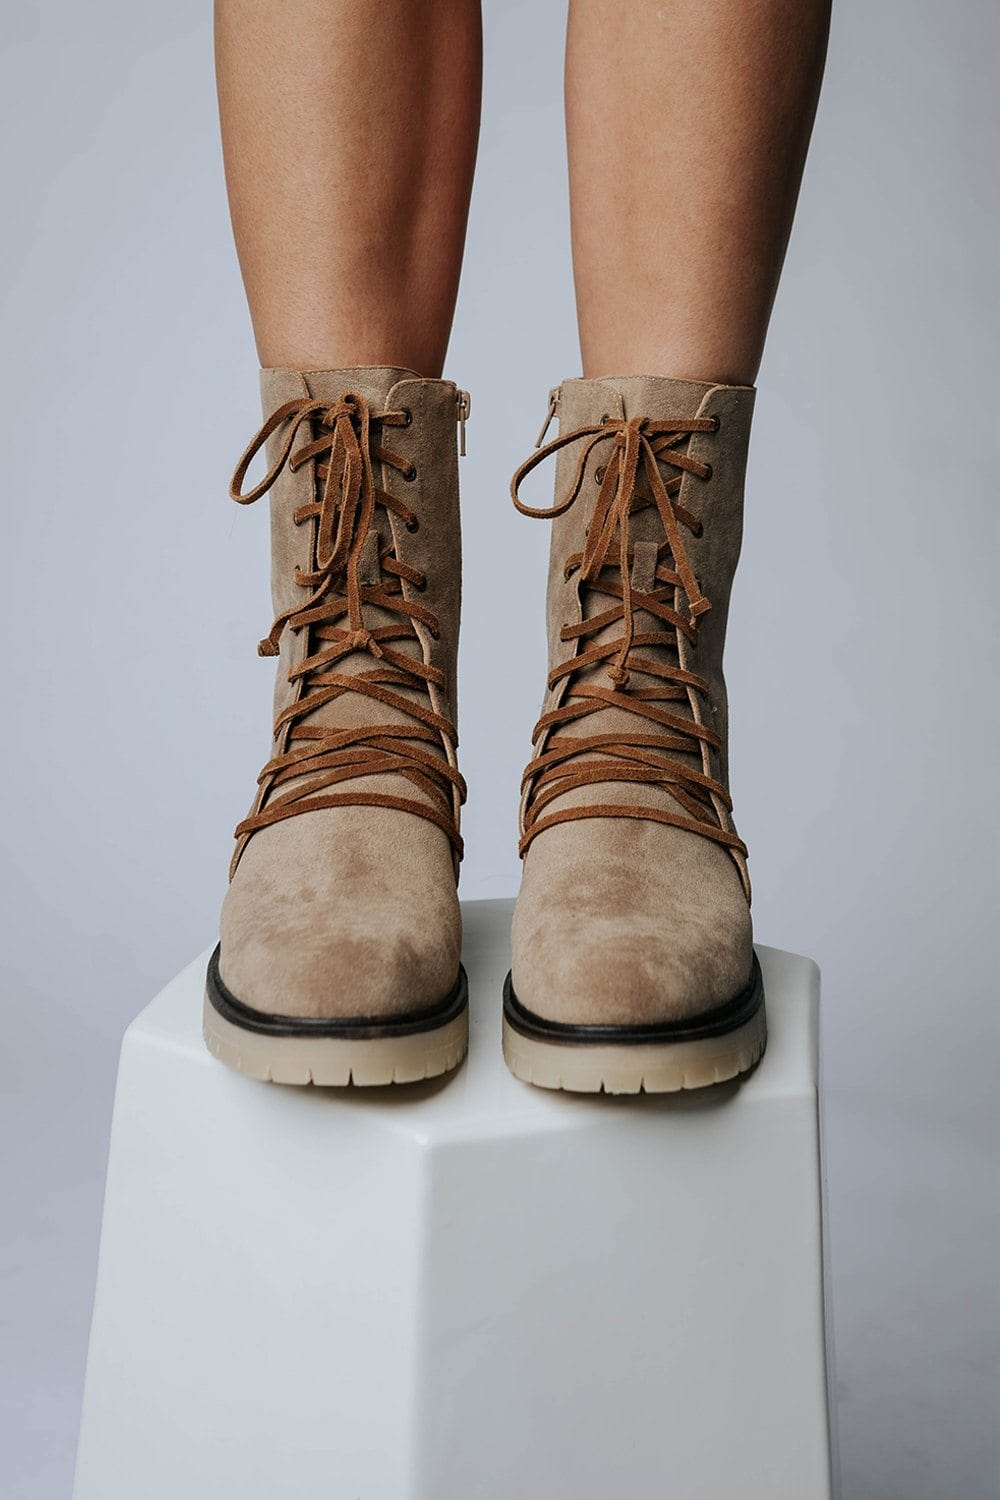 Walking on a Dream Boots in Latte, cladandcloth, n/a.